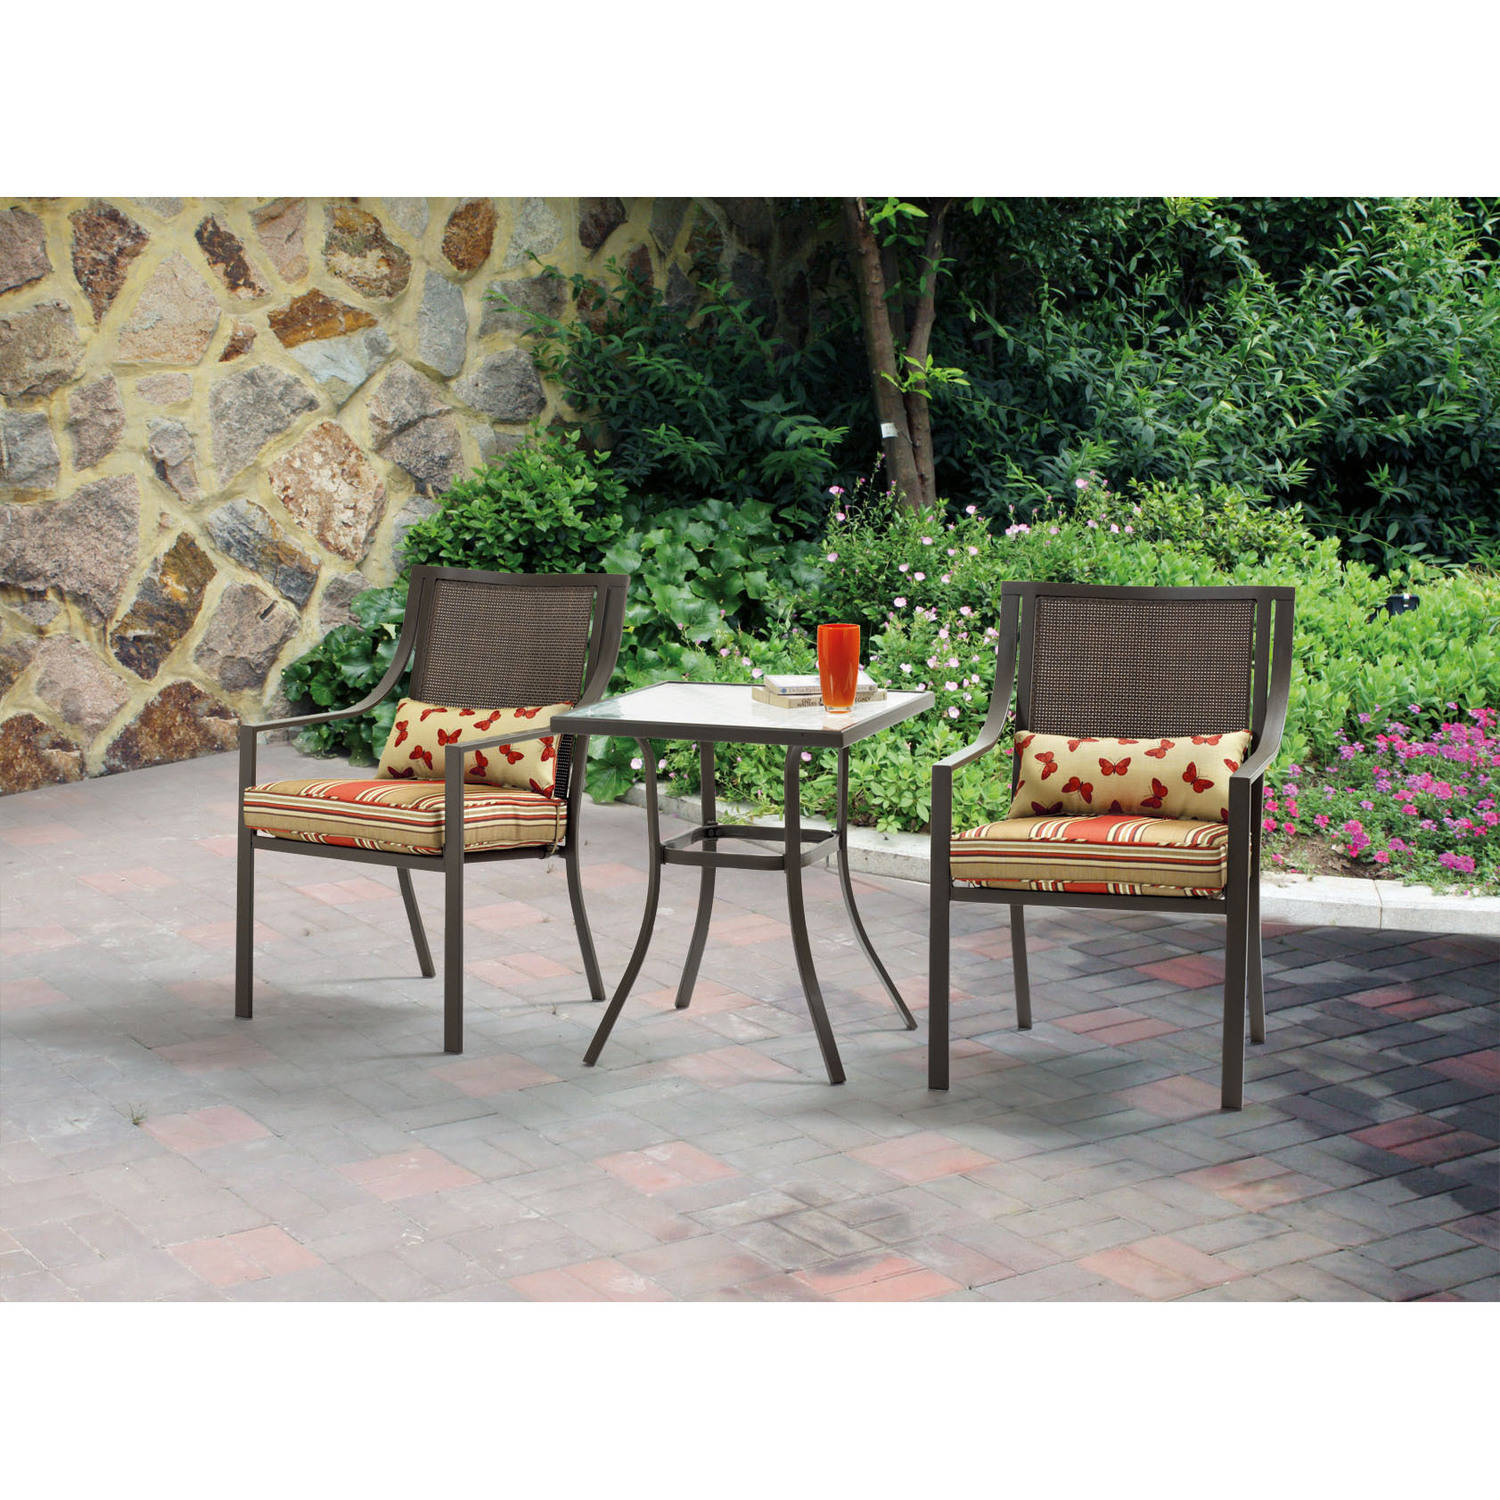 Mainstays Alexandra Square 3 Piece Outdoor Bistro Set, Red Stripe With  Butterflies, Seats 2   Walmart.com